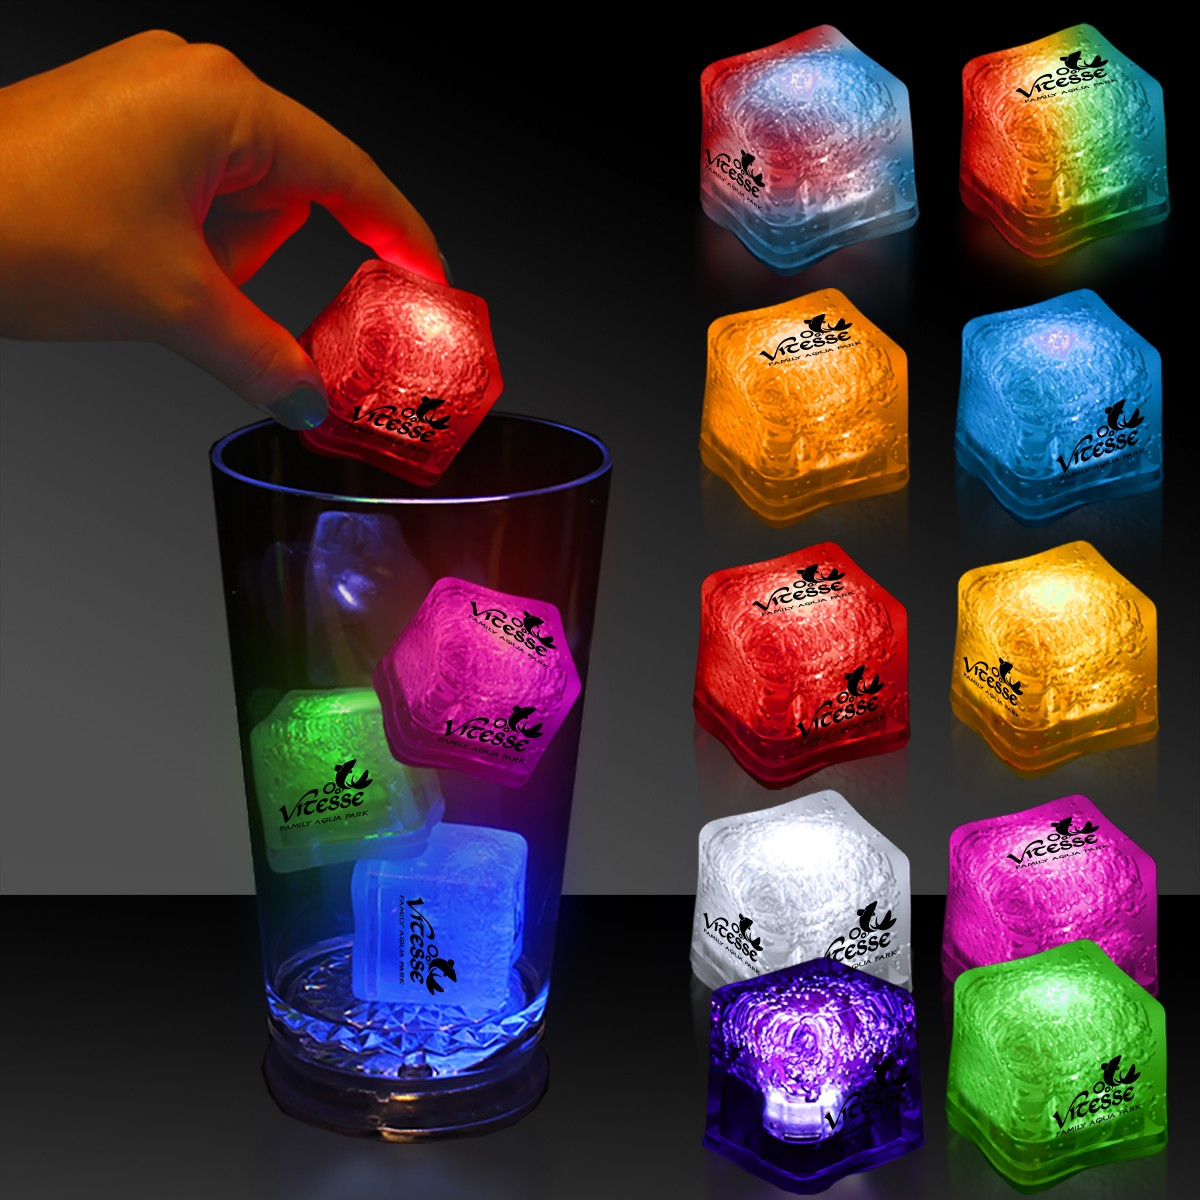 Imprinted Lited Ice Cubes - Variety of Colors